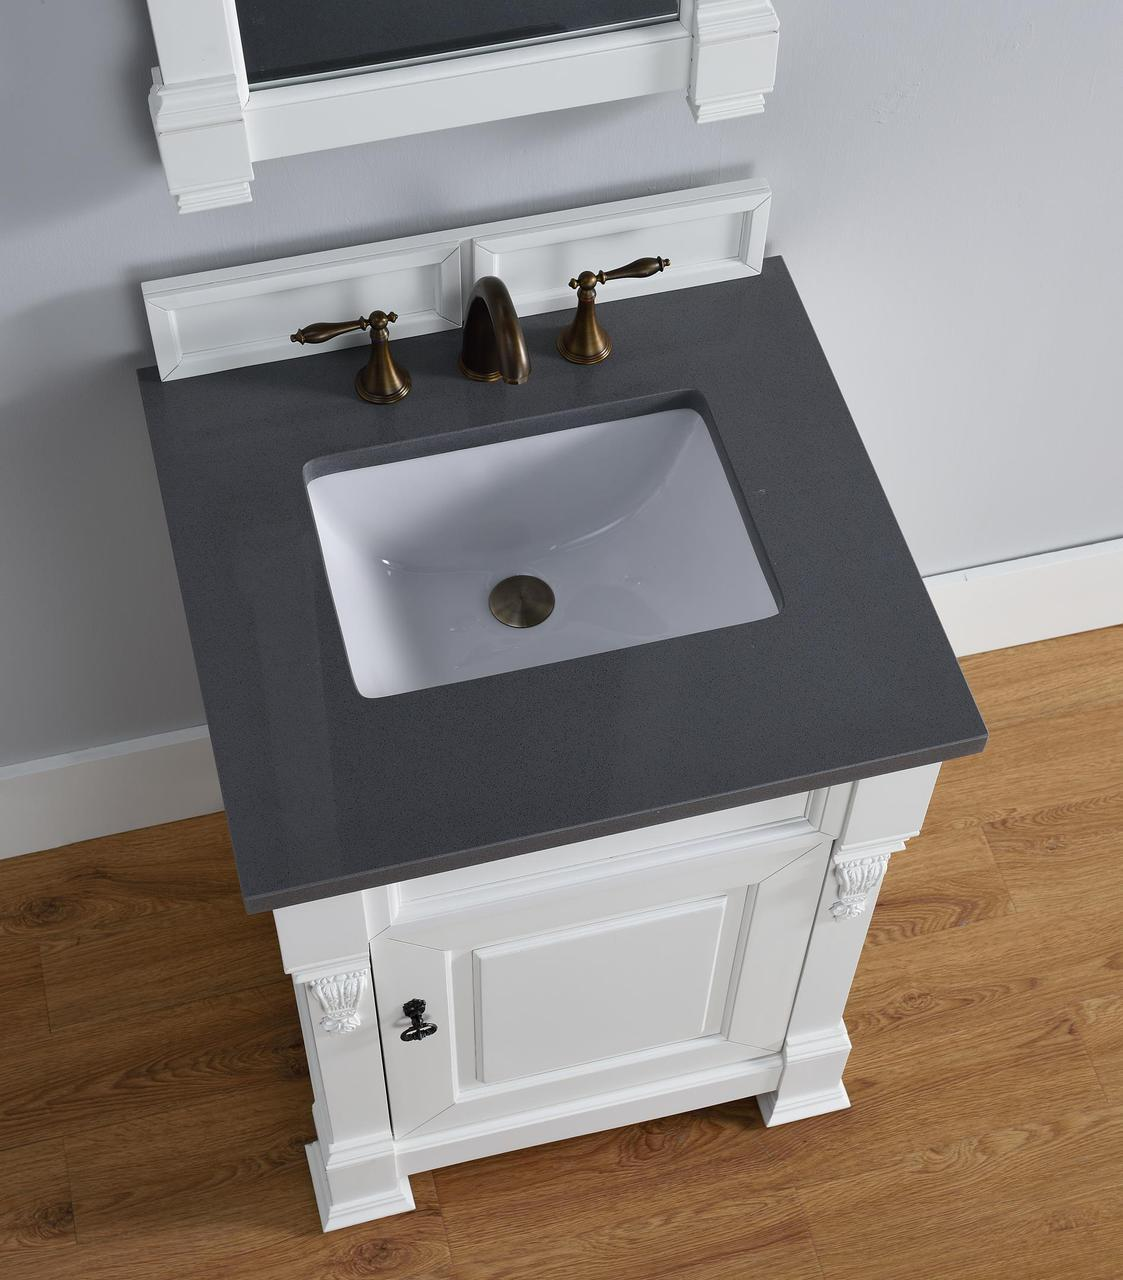 26 inch bathroom vanity. Abstron 26 Inch White Finish Single Sink Bathroom Vanity Optional Countertops N